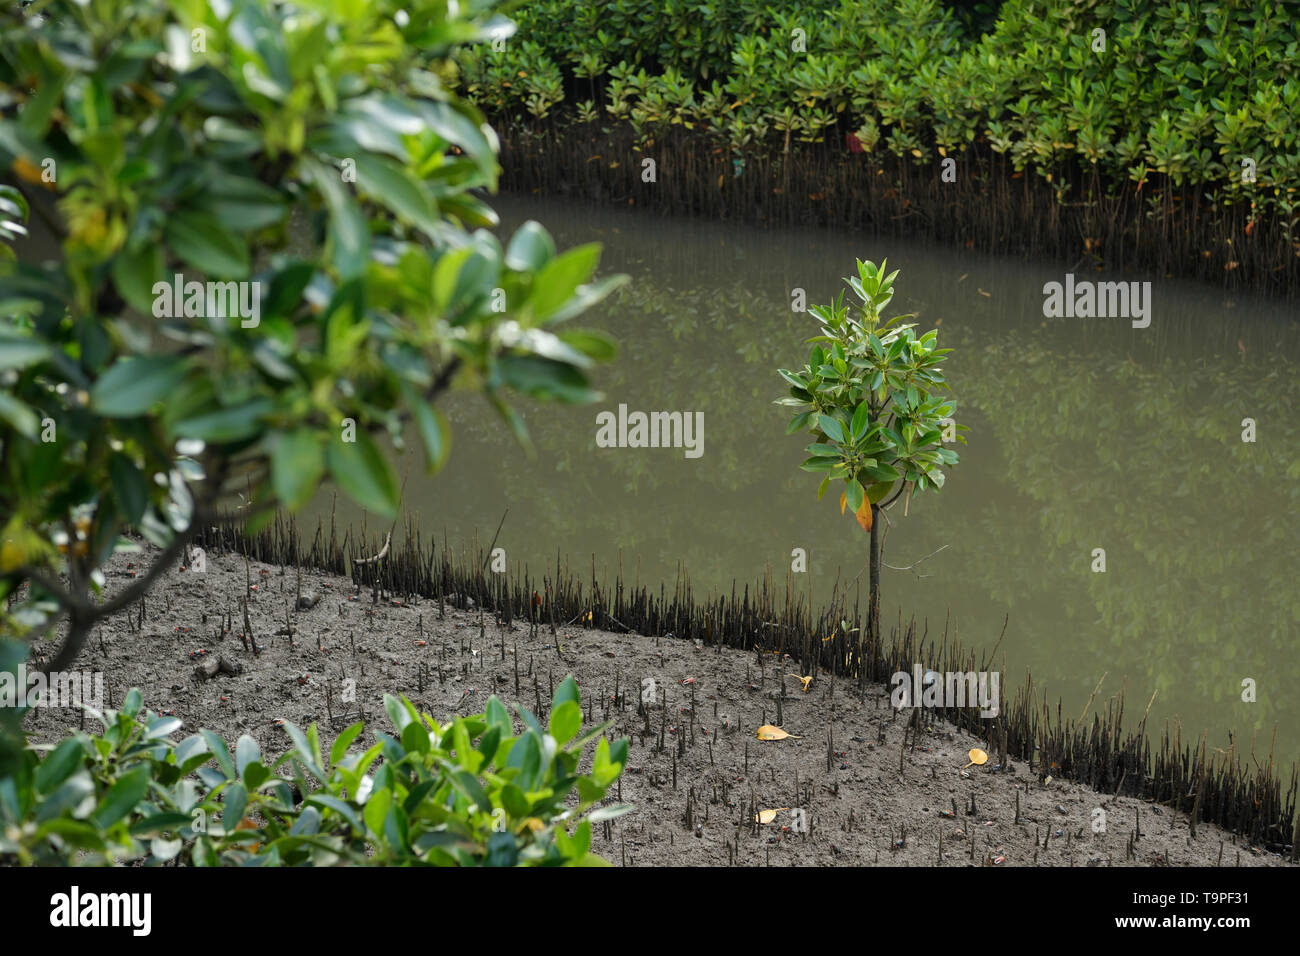 Seedling of Black Mangrove tree, Bruguiera gymnorrhiza, growing in pencil roots of White Mangrove trees, Umgeni river estuary, Durban, South Africa - Stock Image